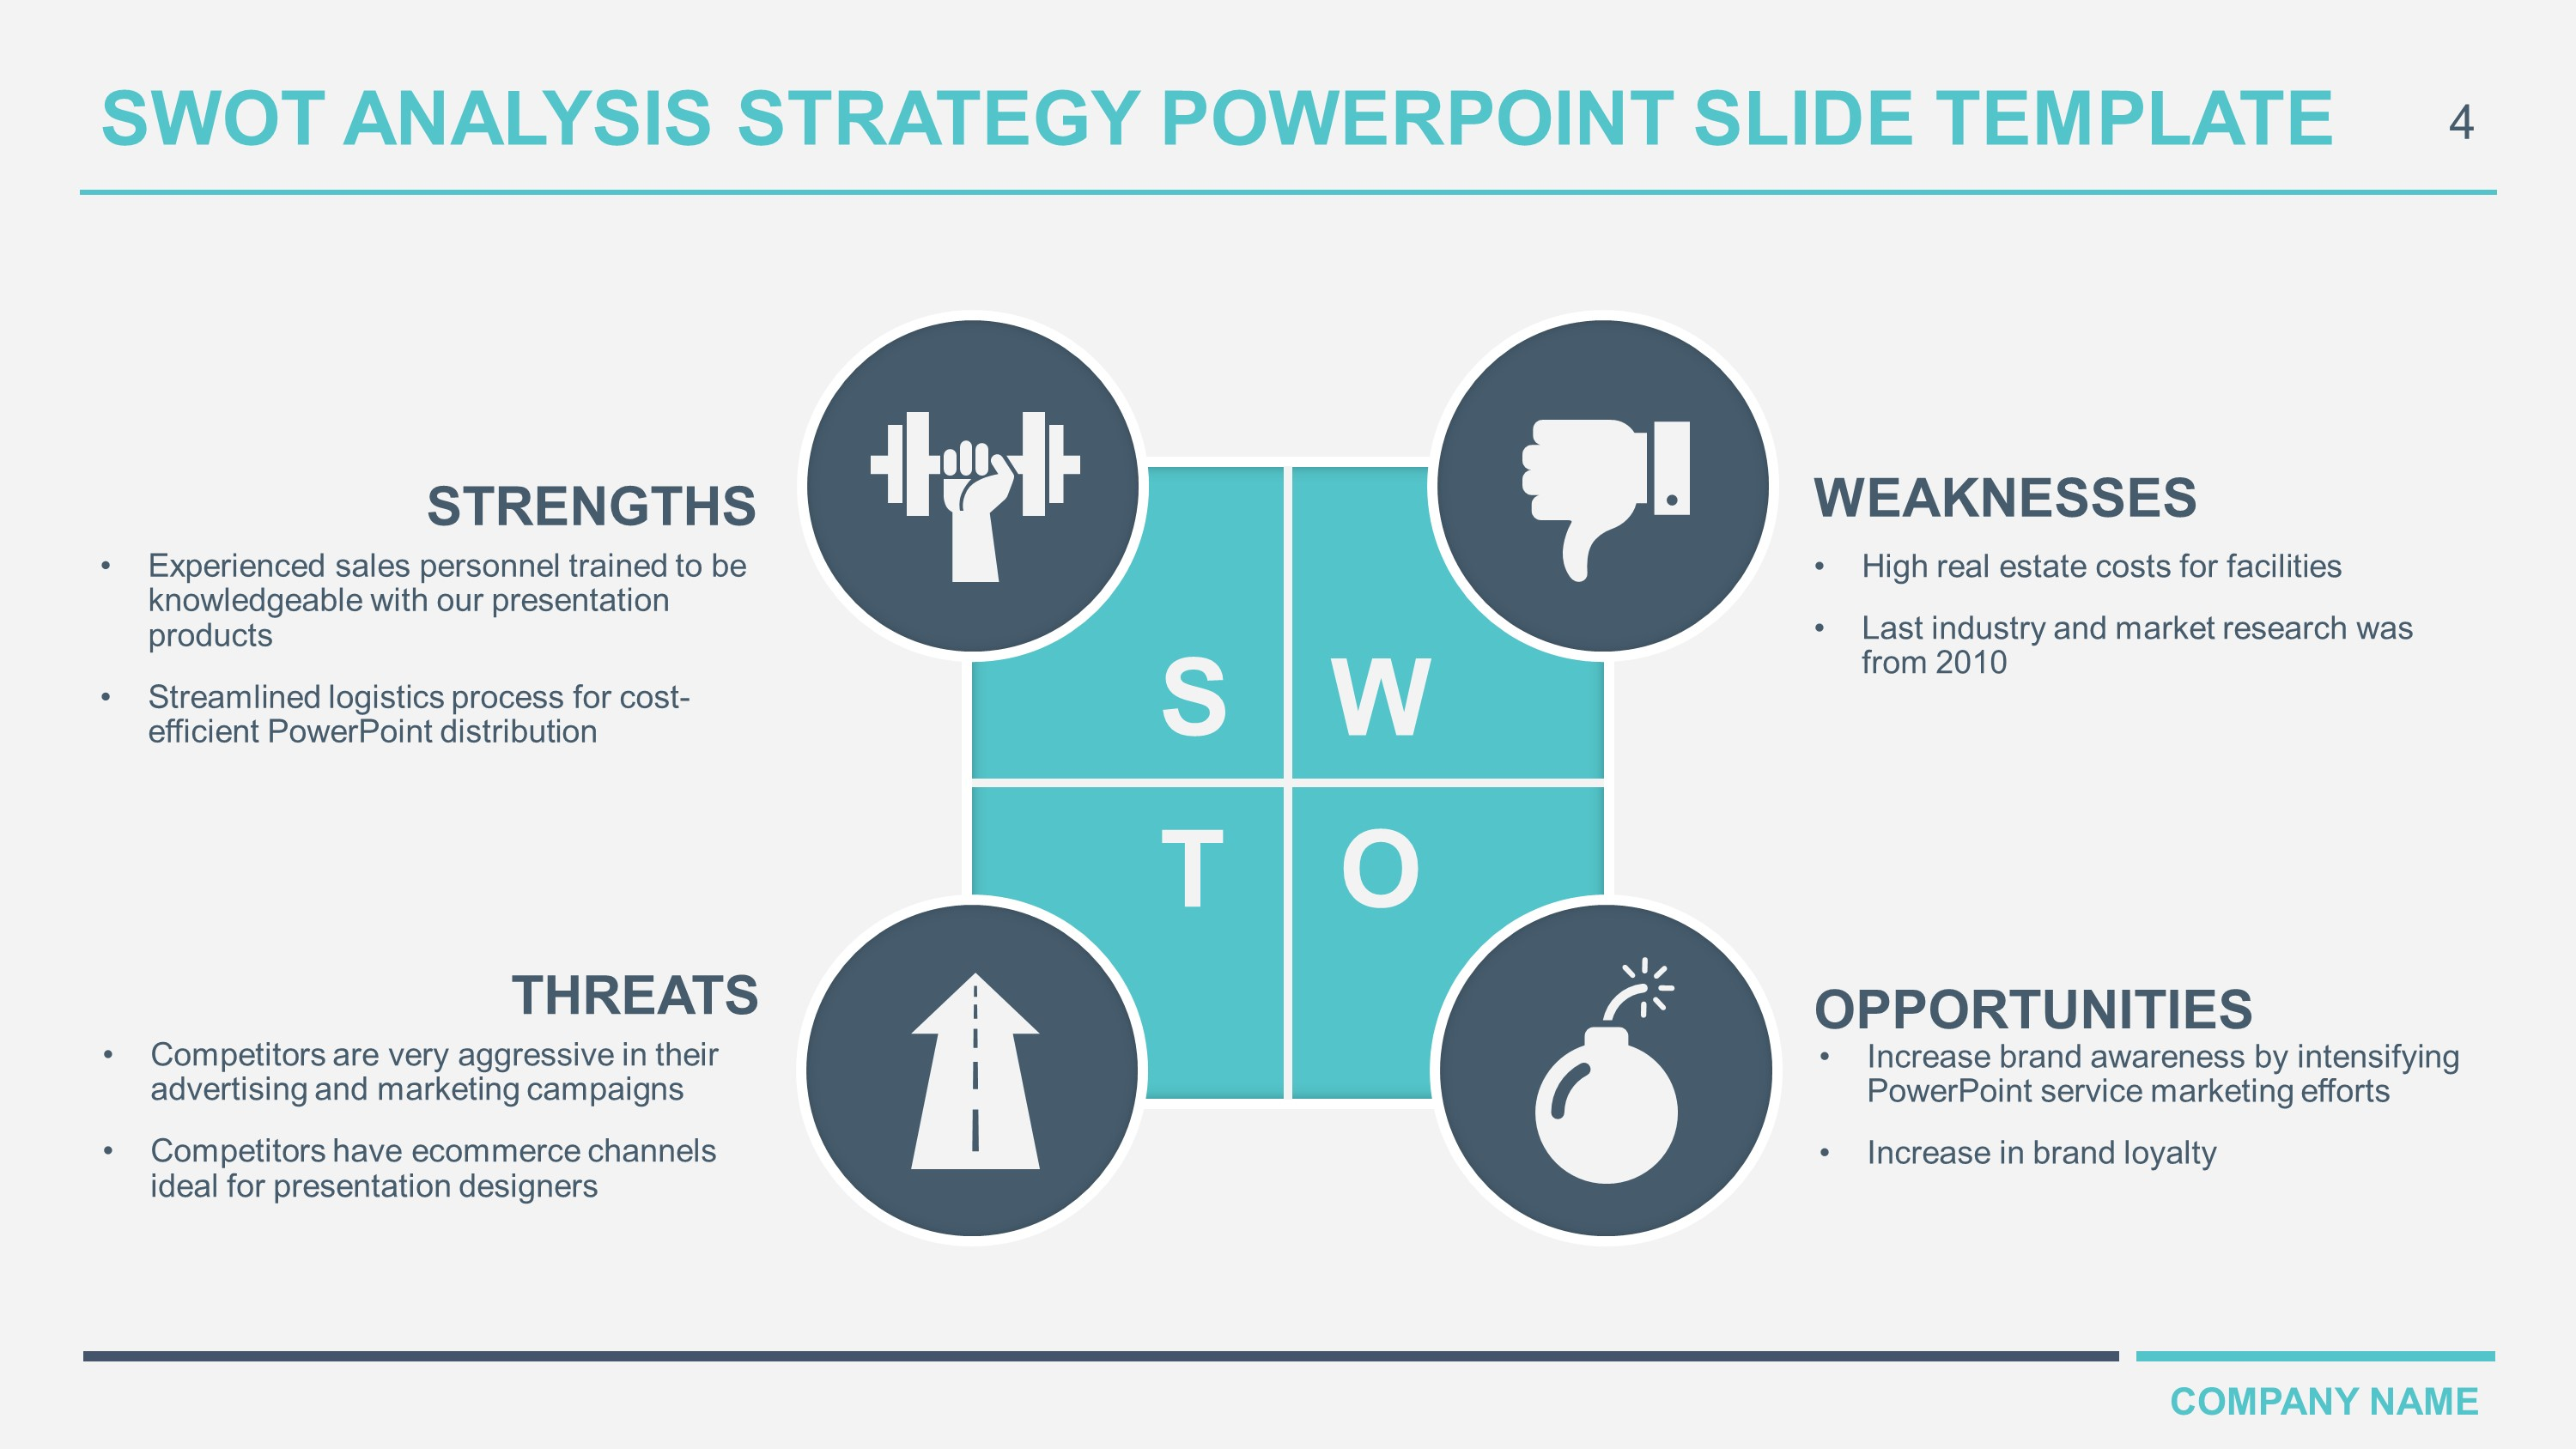 https://slidestore.com/wp-content/uploads/2016/08/2262_Business_SWOT_Analysis_PowerPoint_Slide_4_SWOT_ANALYSIS_STRATEGY_POWERPOINT_SLIDE_TEMPLATE.jpg